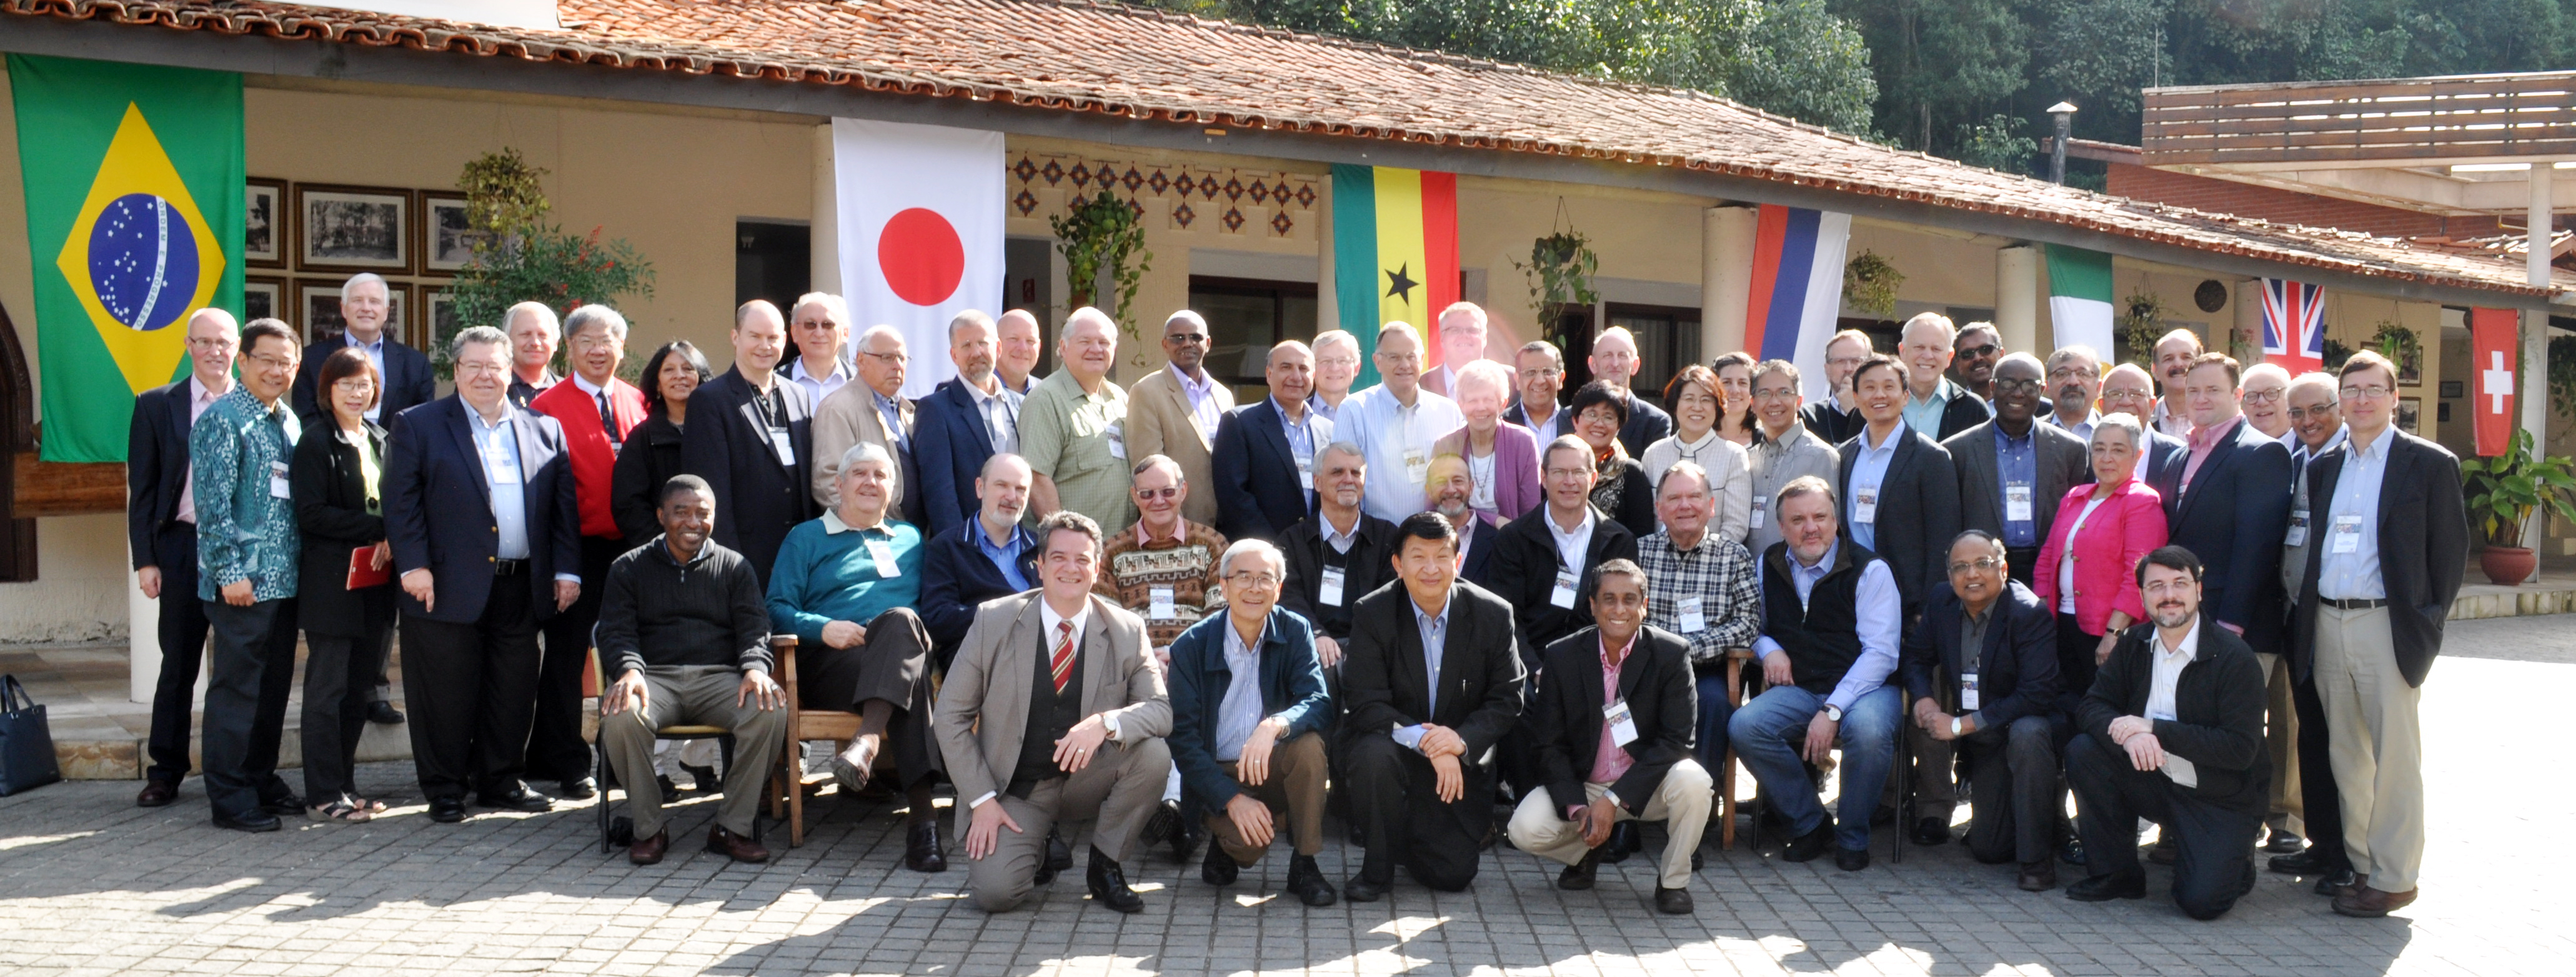 WRF/LAUSANNE GLOBAL THEOLOGICAL EDUCATION CONSULTATION, JUNE 2 - 6, 2014